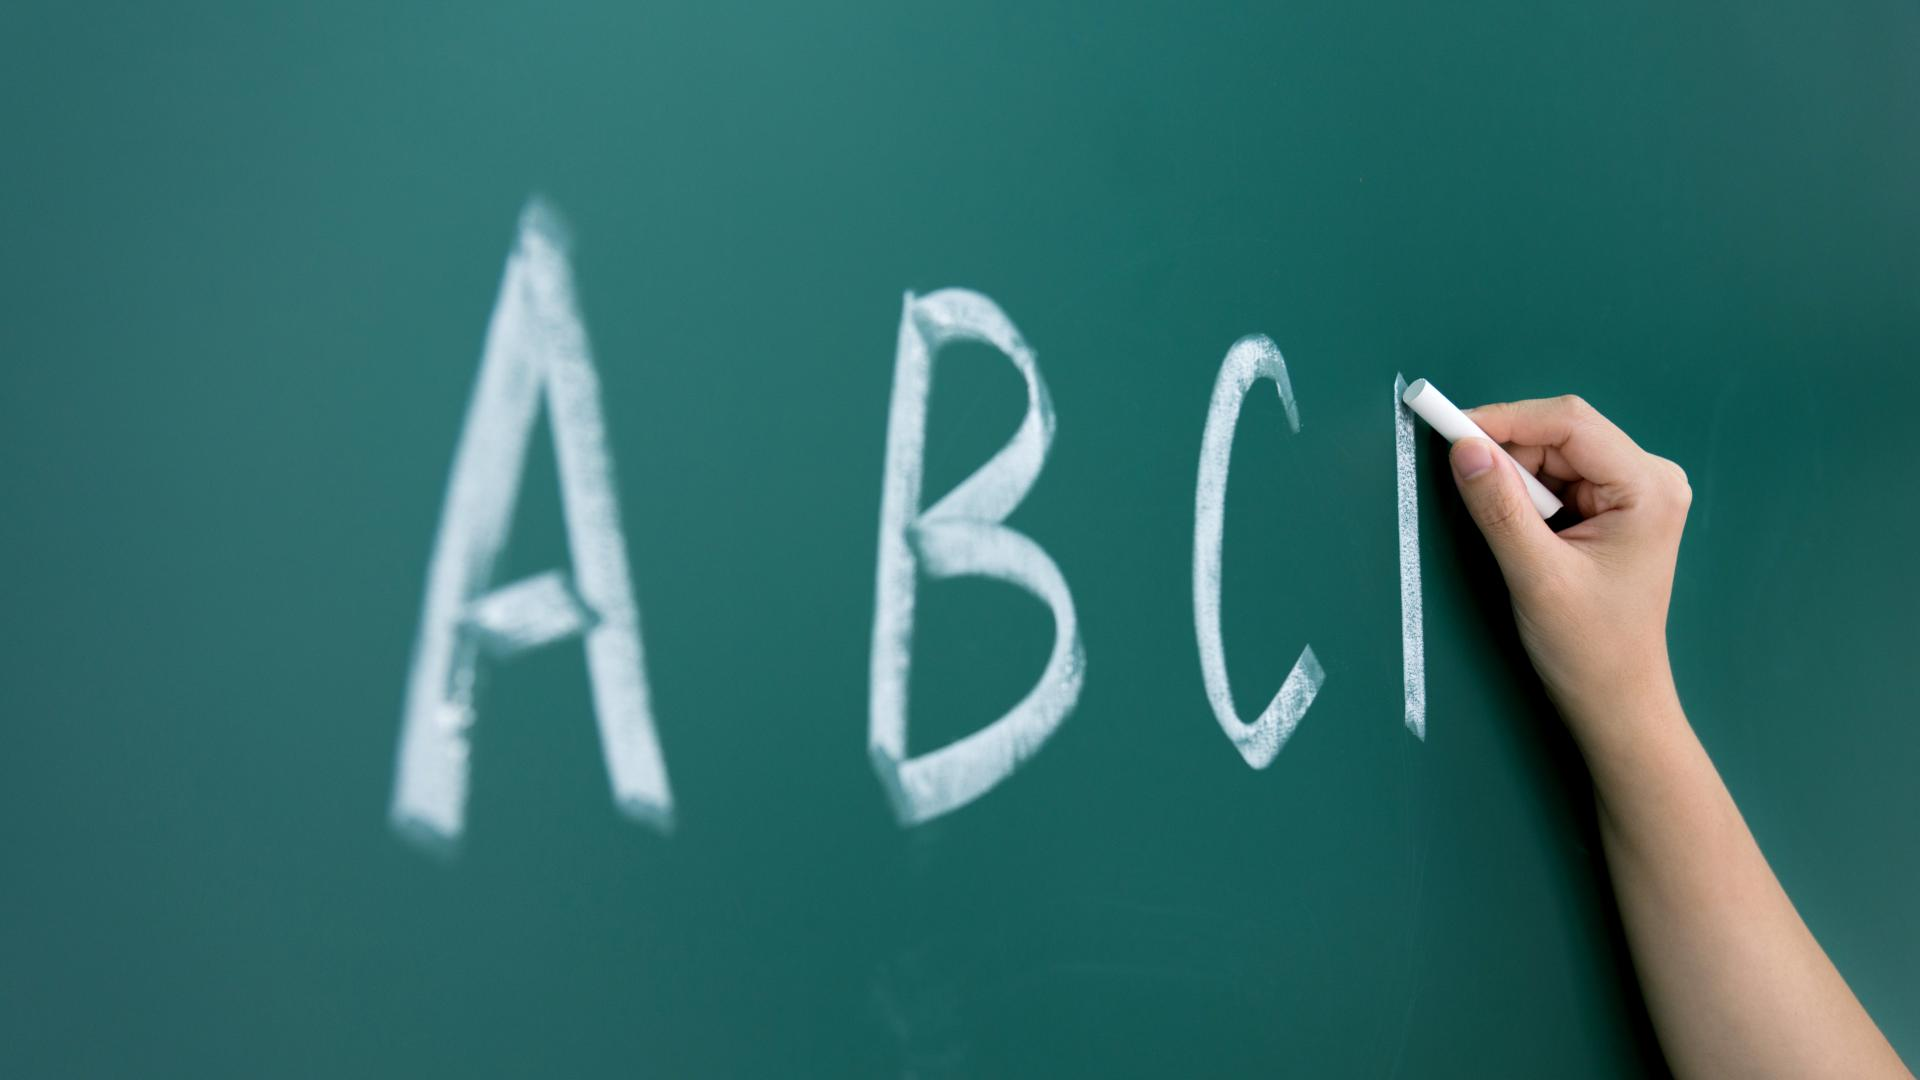 Writing A,B,C's on classroom blackboard